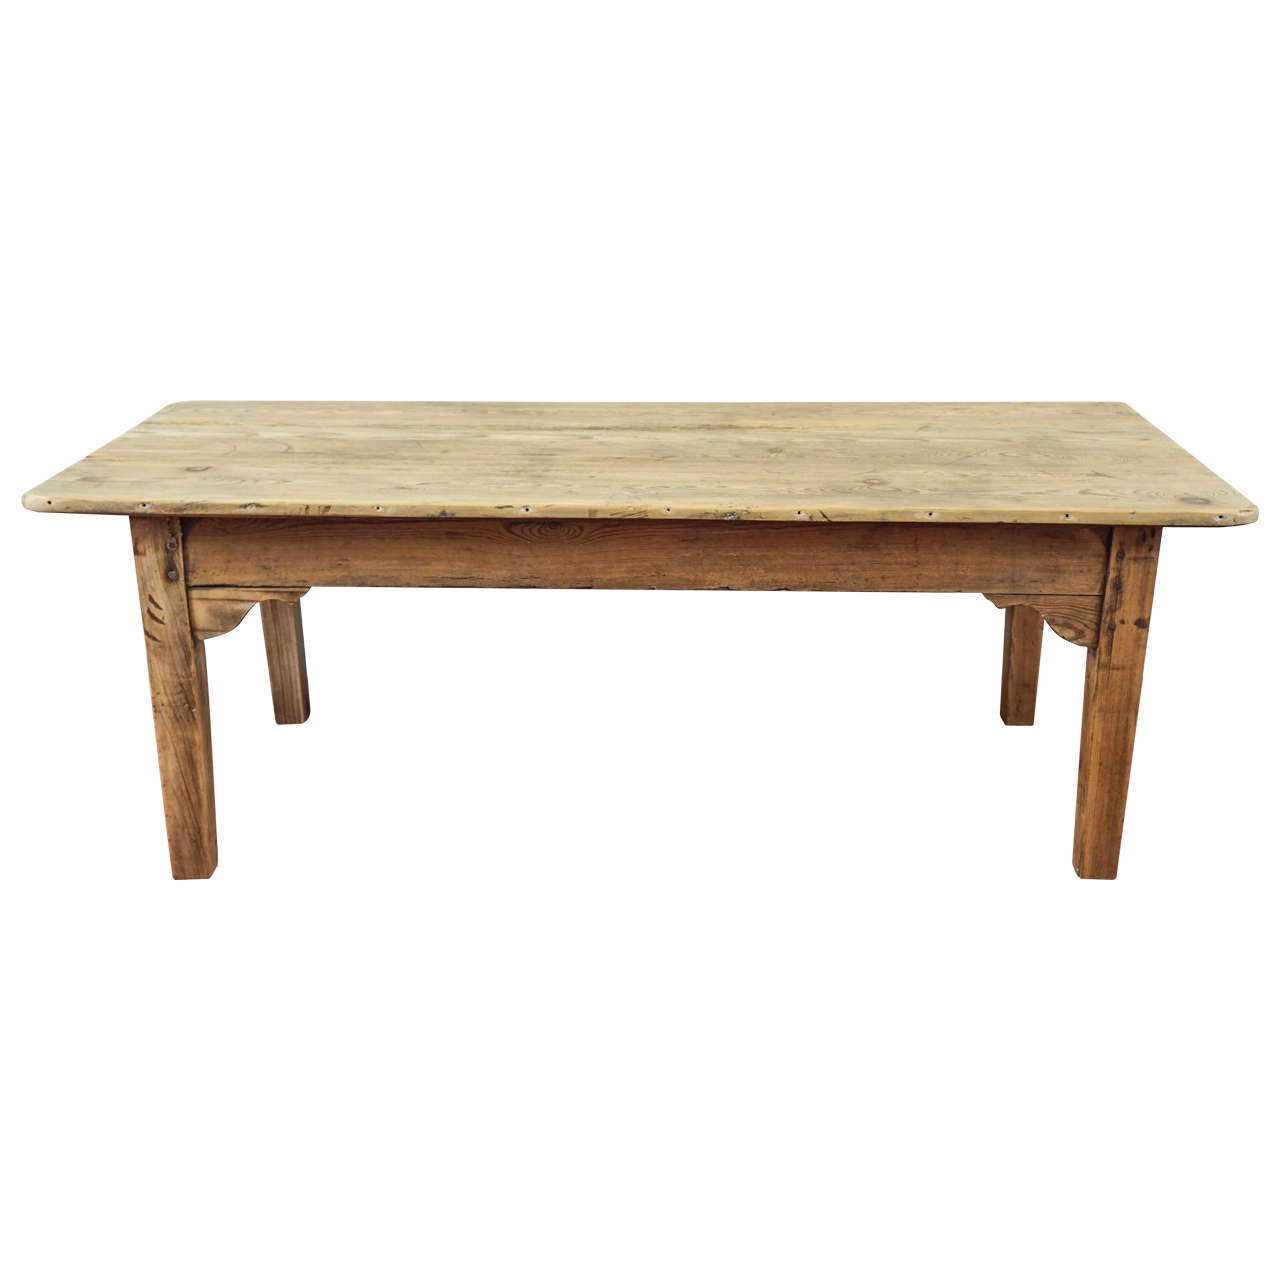 French Country Coffee Table And End Tables: Antique French Country Coffee Table At 1stdibs